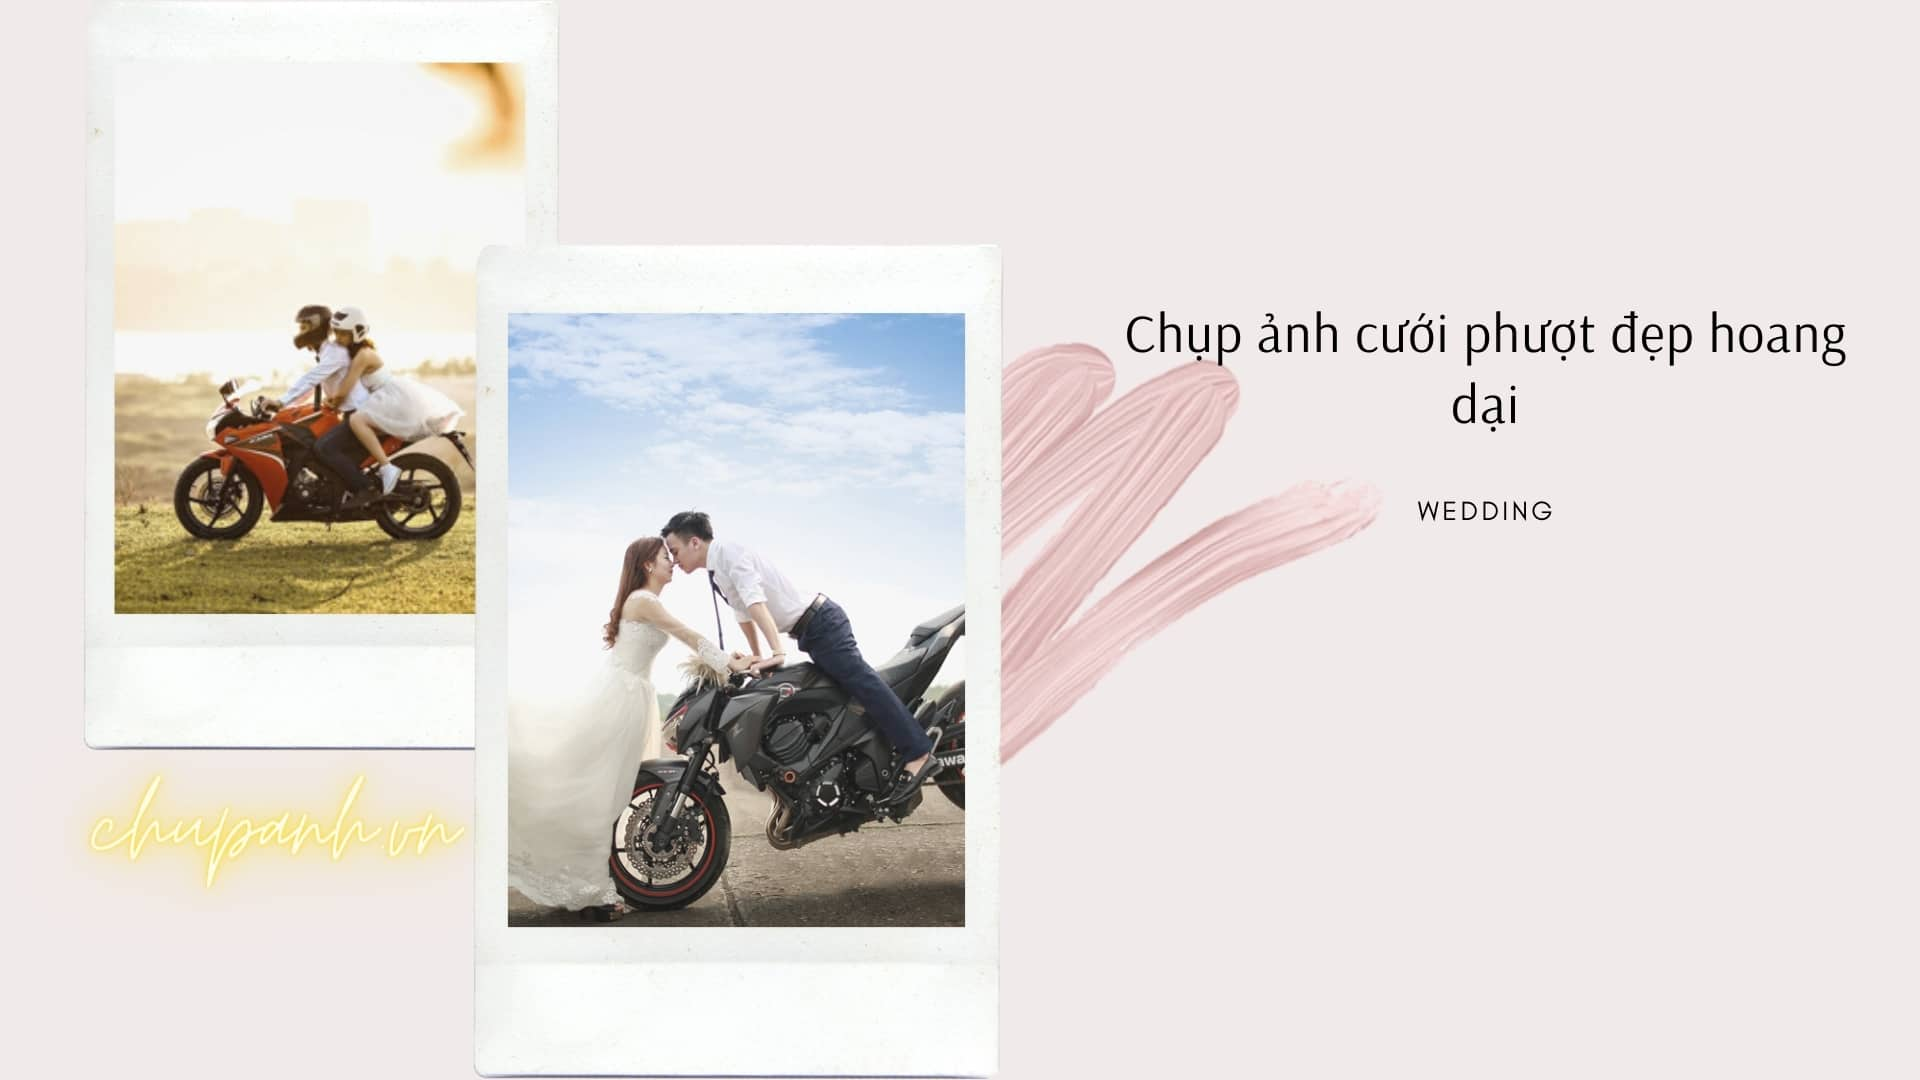 chup anh cuoi phuot 2